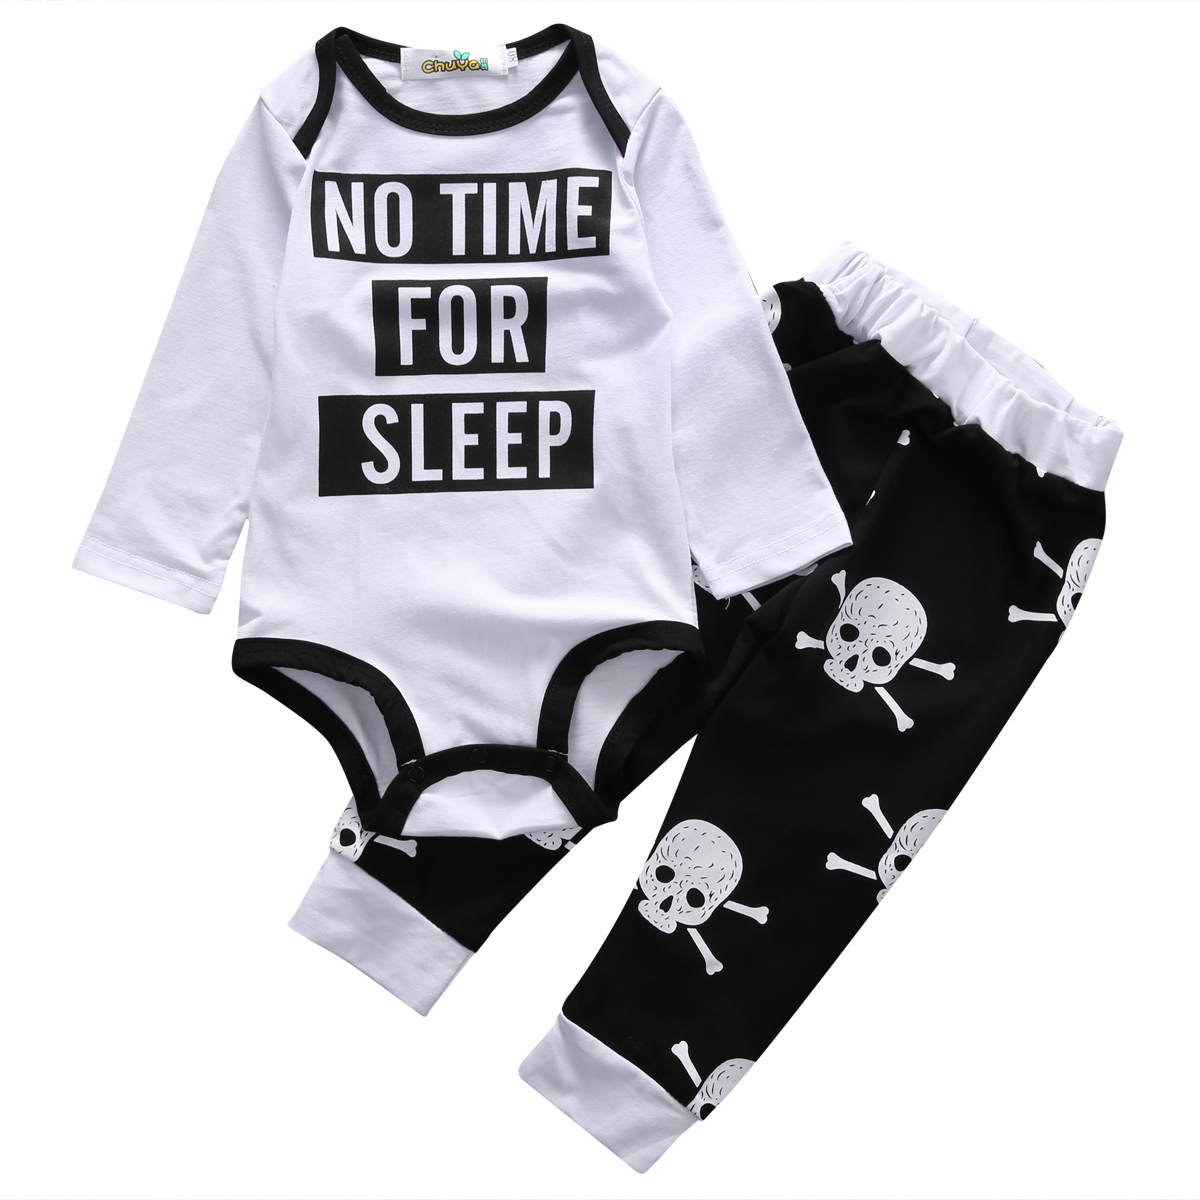 2018 Autumn style infant clothes baby clothing sets Baby ...